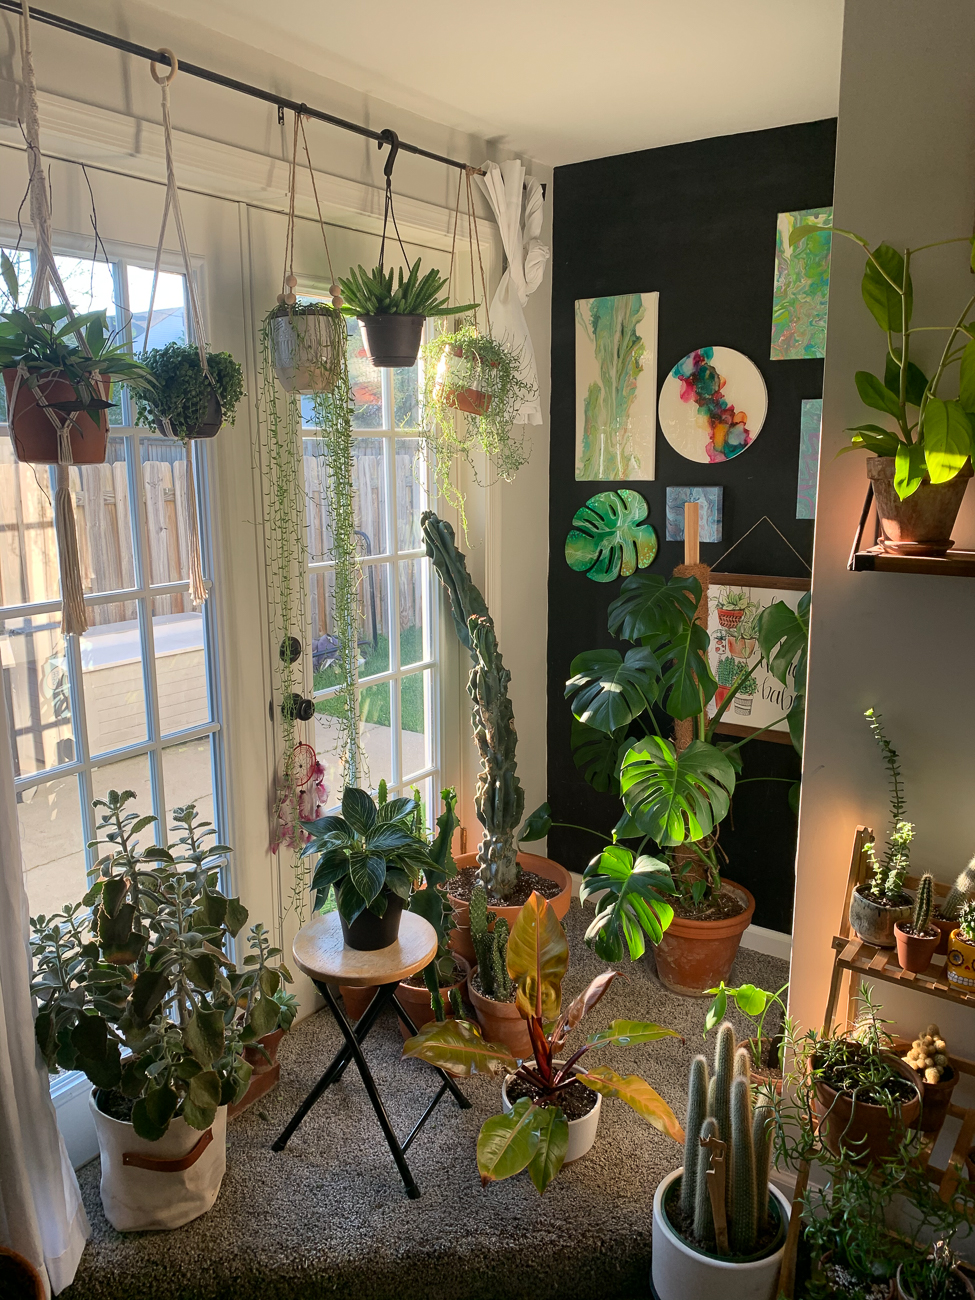 "Abby McFall (IG: @midwesteden) / ""I've always been a major tree hugger. After falling madly in love with houseplants a few years ago, I find myself living in my own personal Eden. Plants are my passion, and have truly taken over my room! I hope to continue growing my collection, and sharing my love of plants!"" / Image courtesy of Abby McFall // Published: 6.13.20"